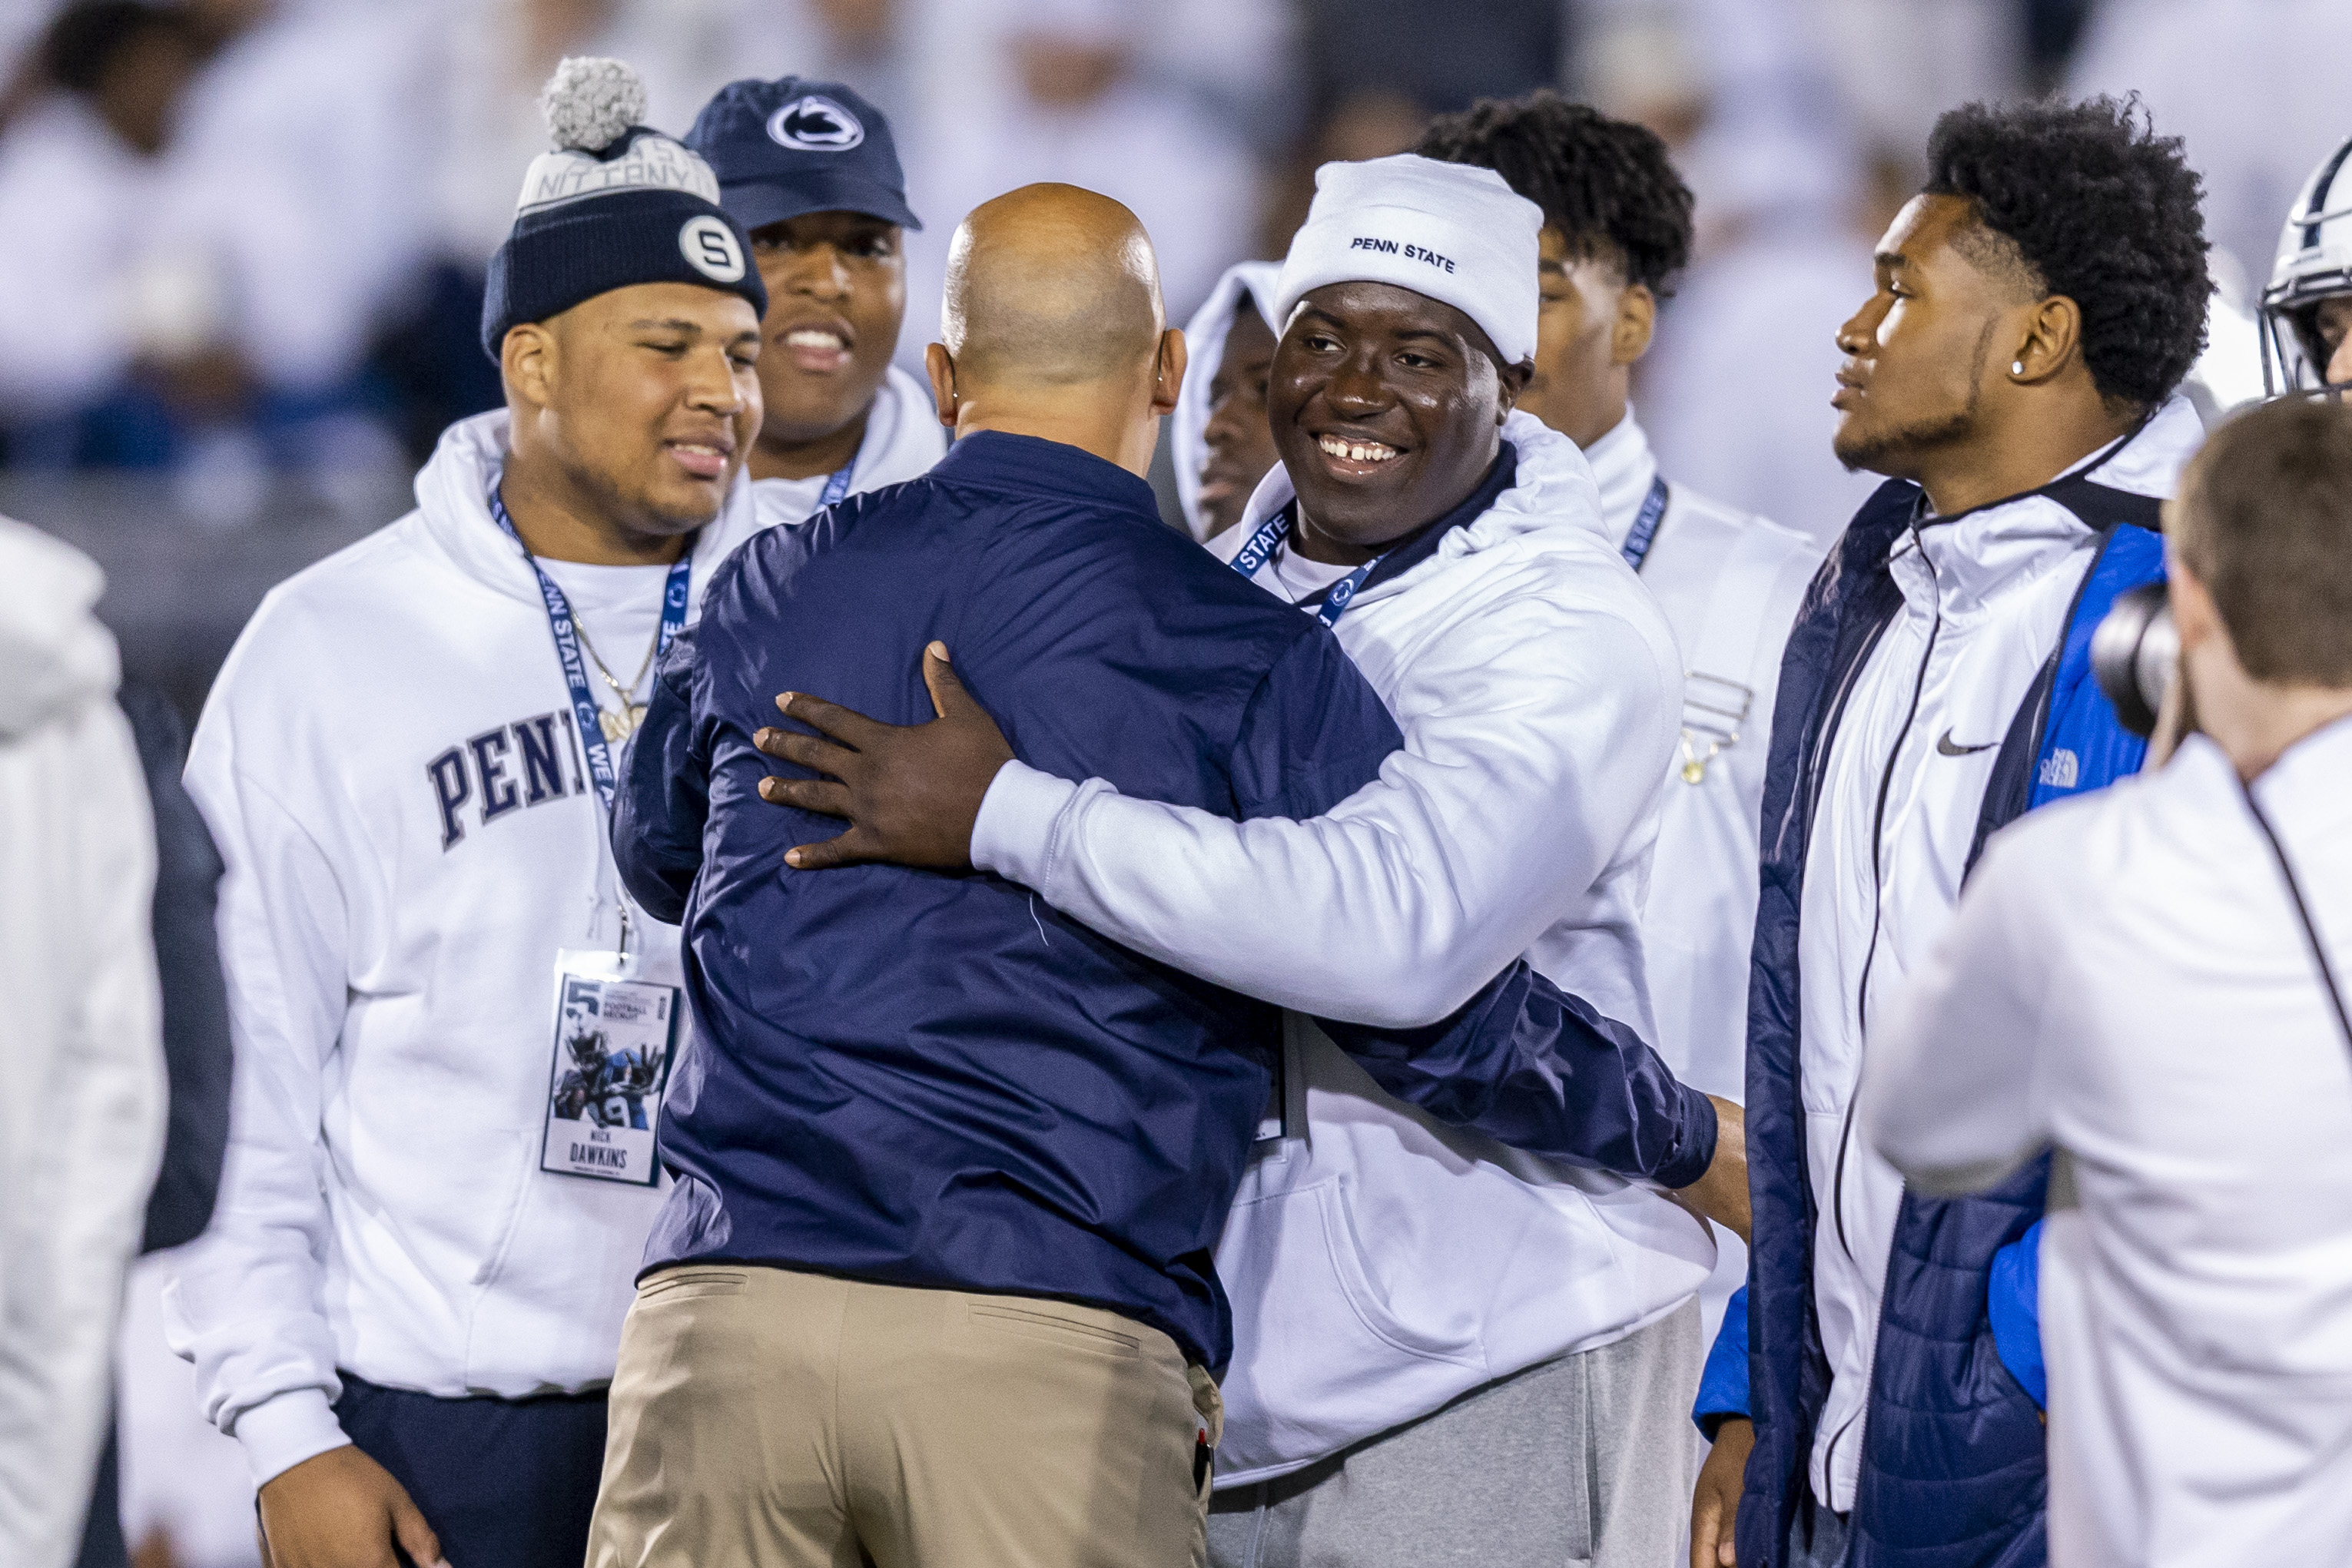 Penn State commit, Susquehanna Township DL Fatorma Mulbah excited after visit from James Franklin and assistants